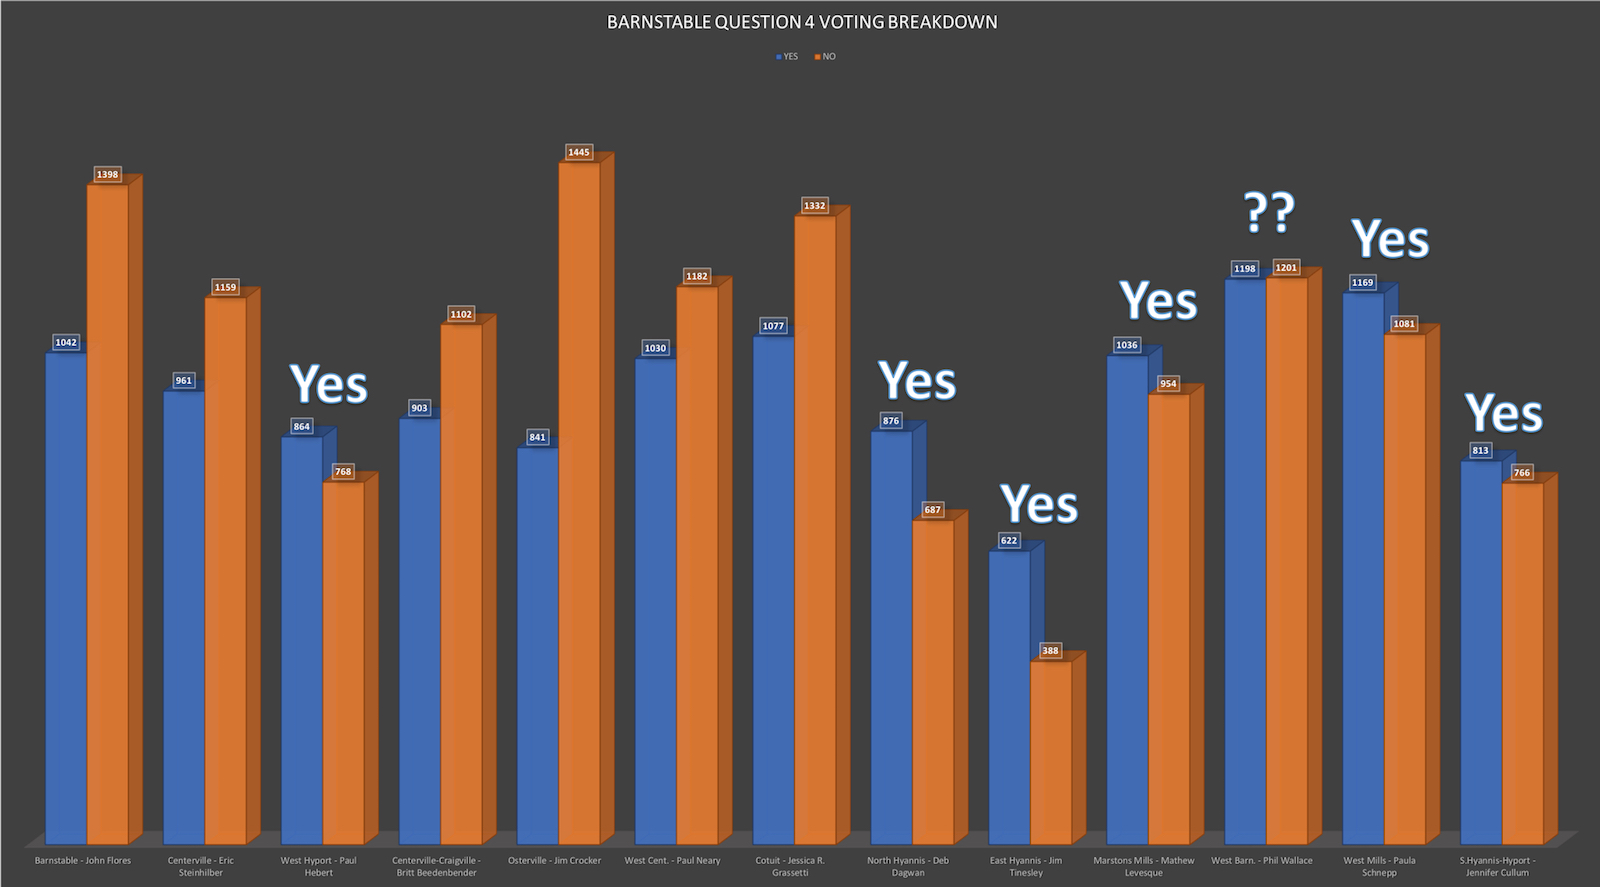 Barnstable Cape Cod Cannabis Question 4 Voting Breakdown Small.jpg